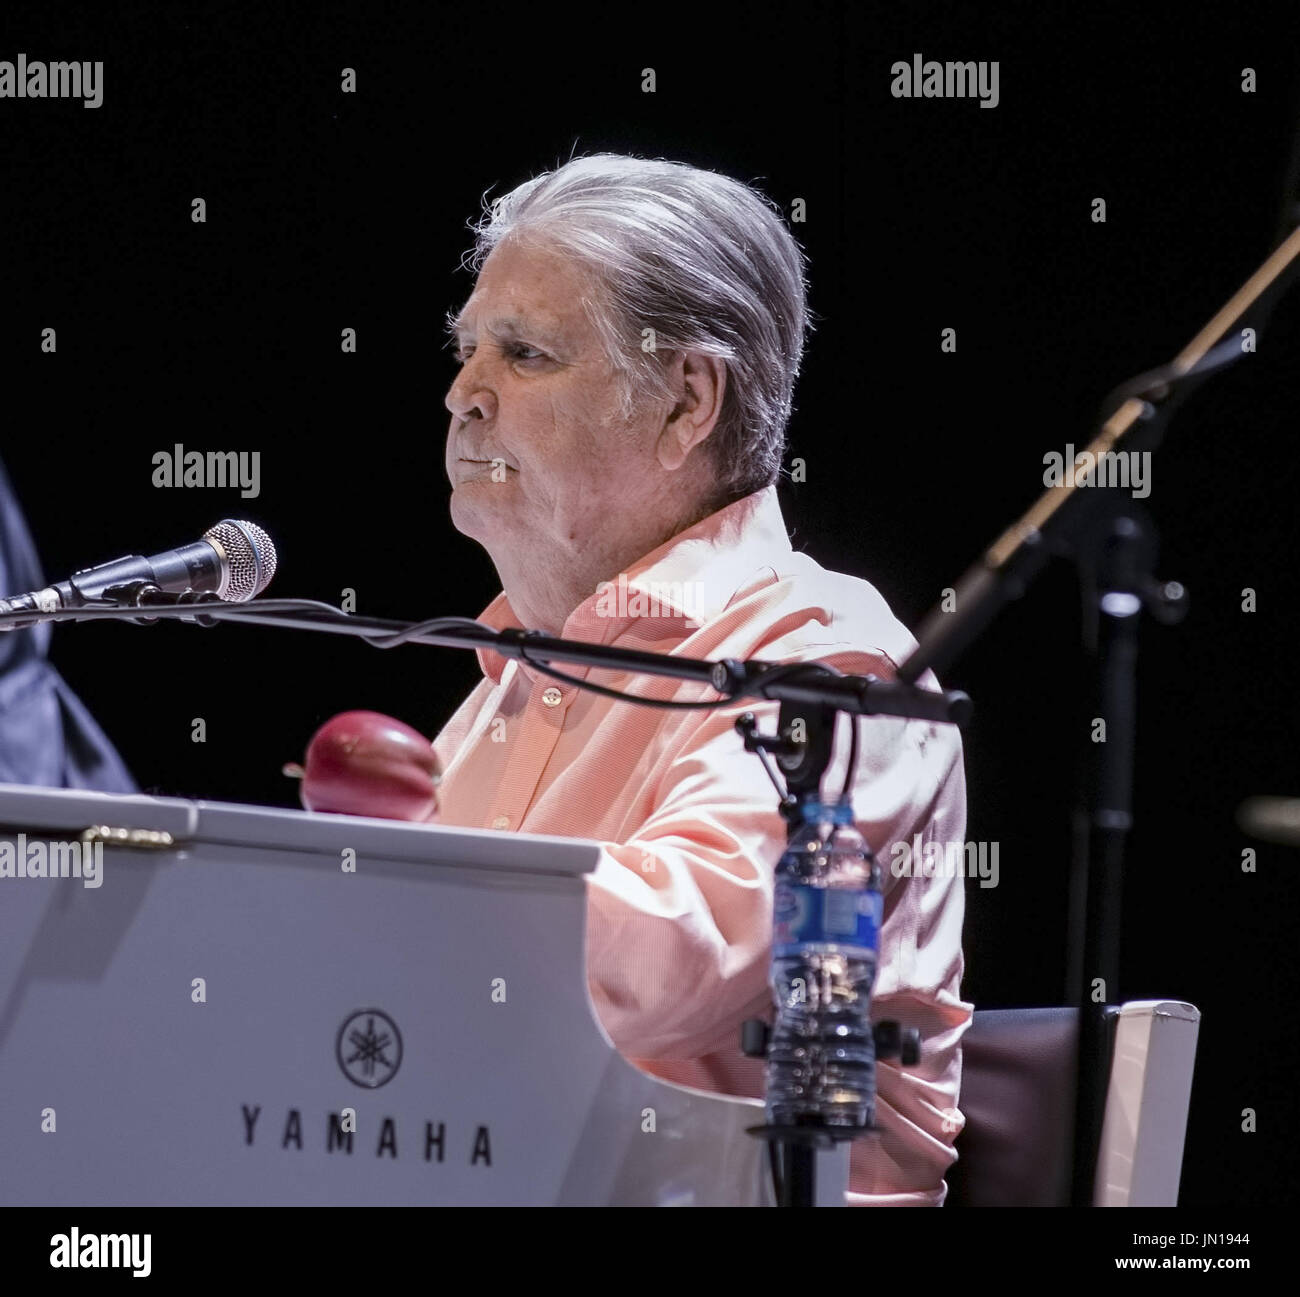 Liverpool, Merseyside, UK. 28th July, 2017. BRIAN WILSON performing The Beach Boy's classic album Pet Sounds Live at Liverpool Exhibition Centre Credit: Andy Von Pip/ZUMA Wire/Alamy Live News - Stock Image